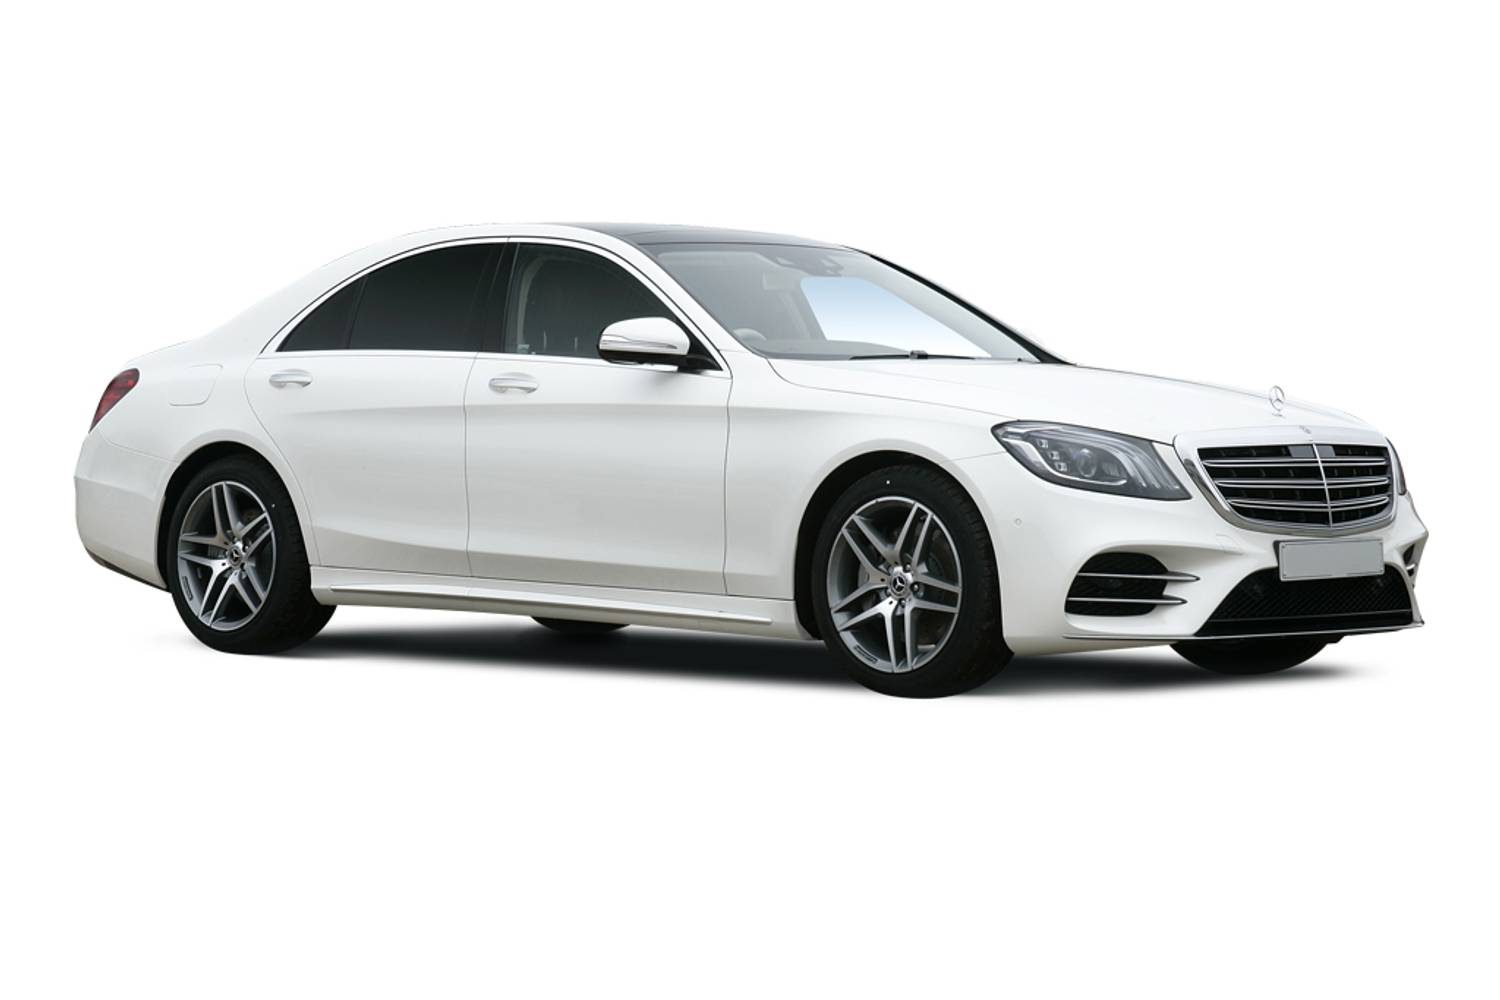 Mercedes-Benz S Class Saloon 4dr Front Three Quarter